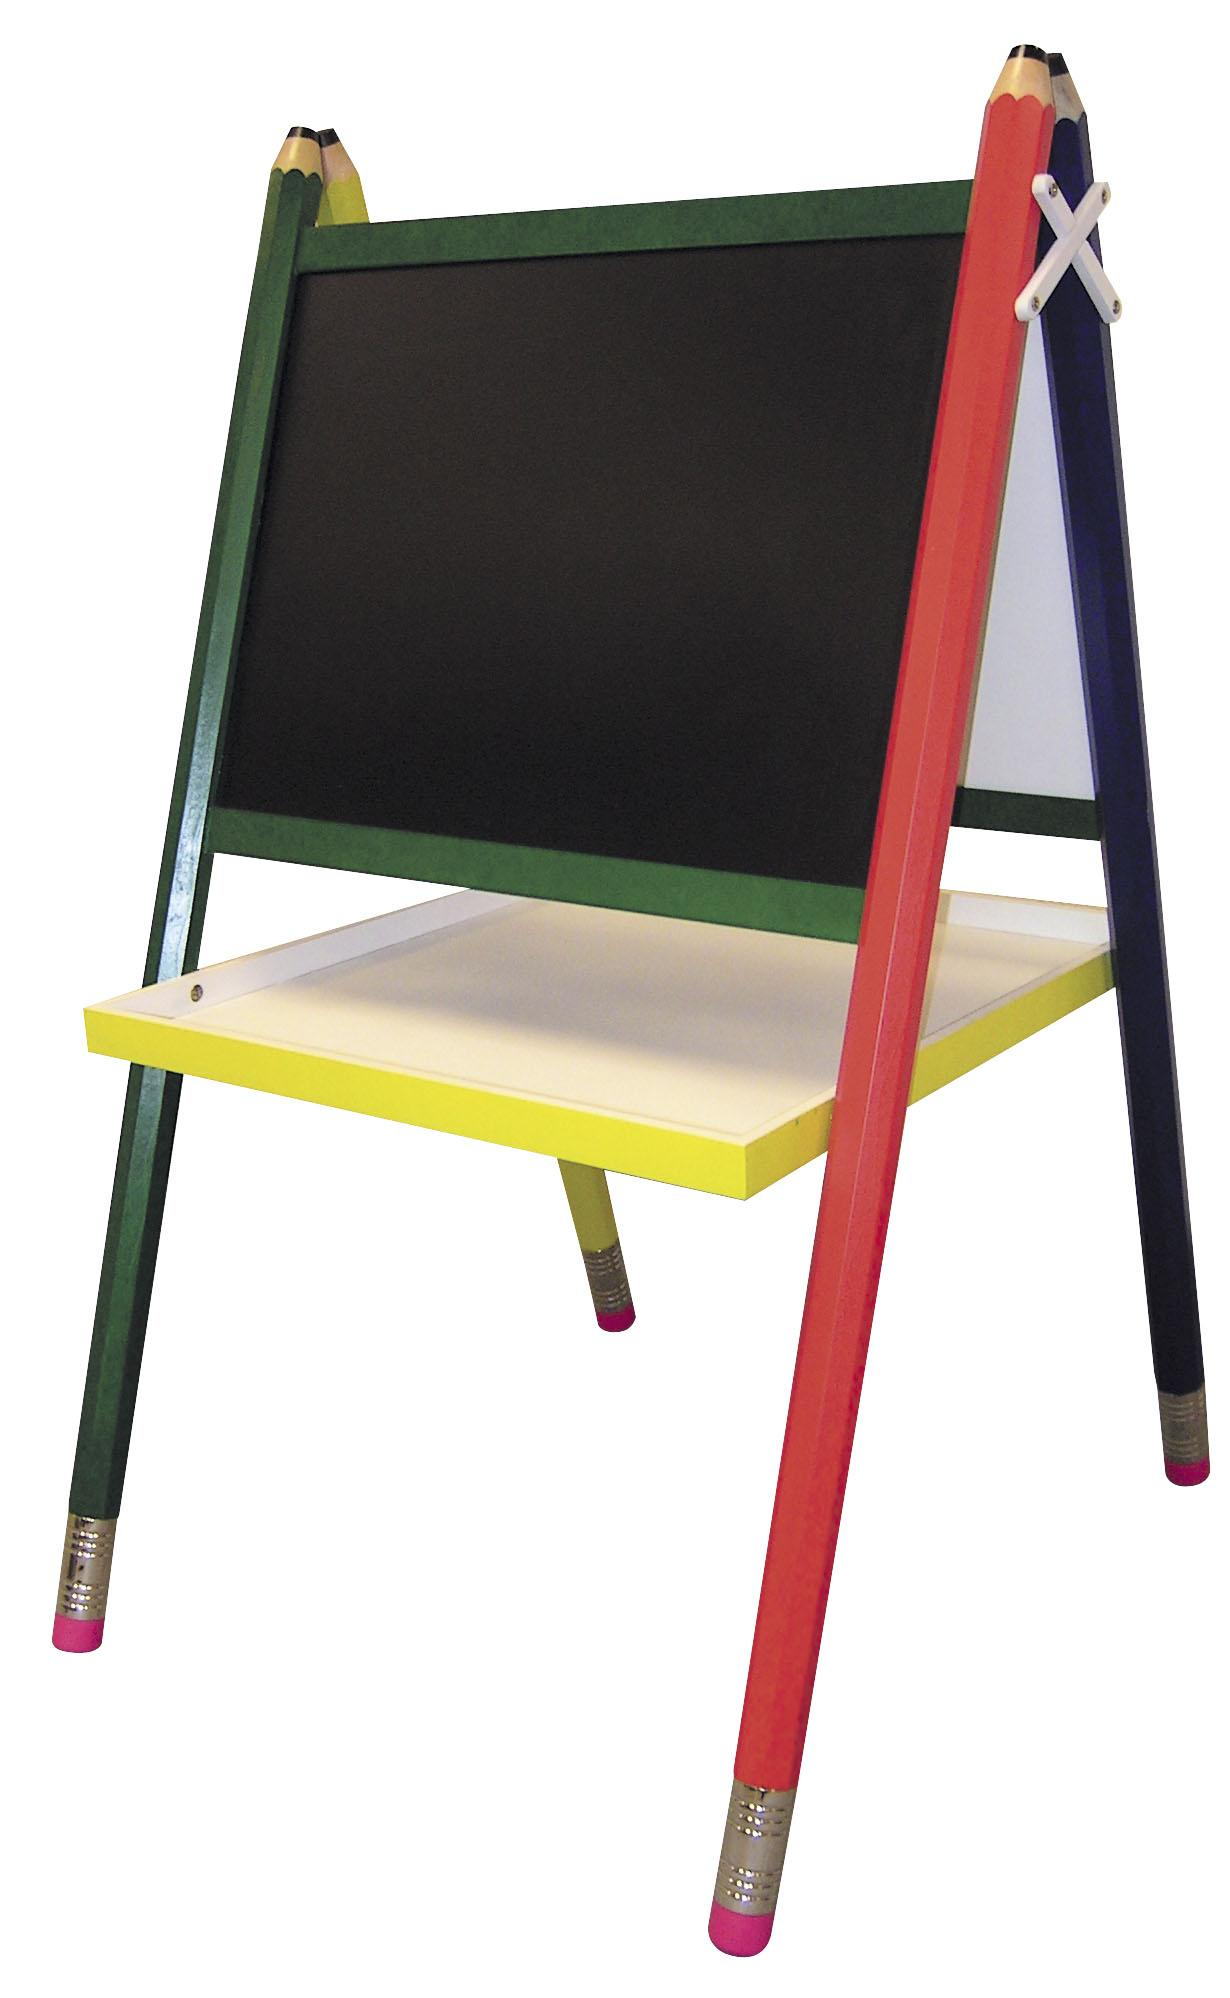 Mygift Small Wood Chalkboard Easel Childrens Free Standing